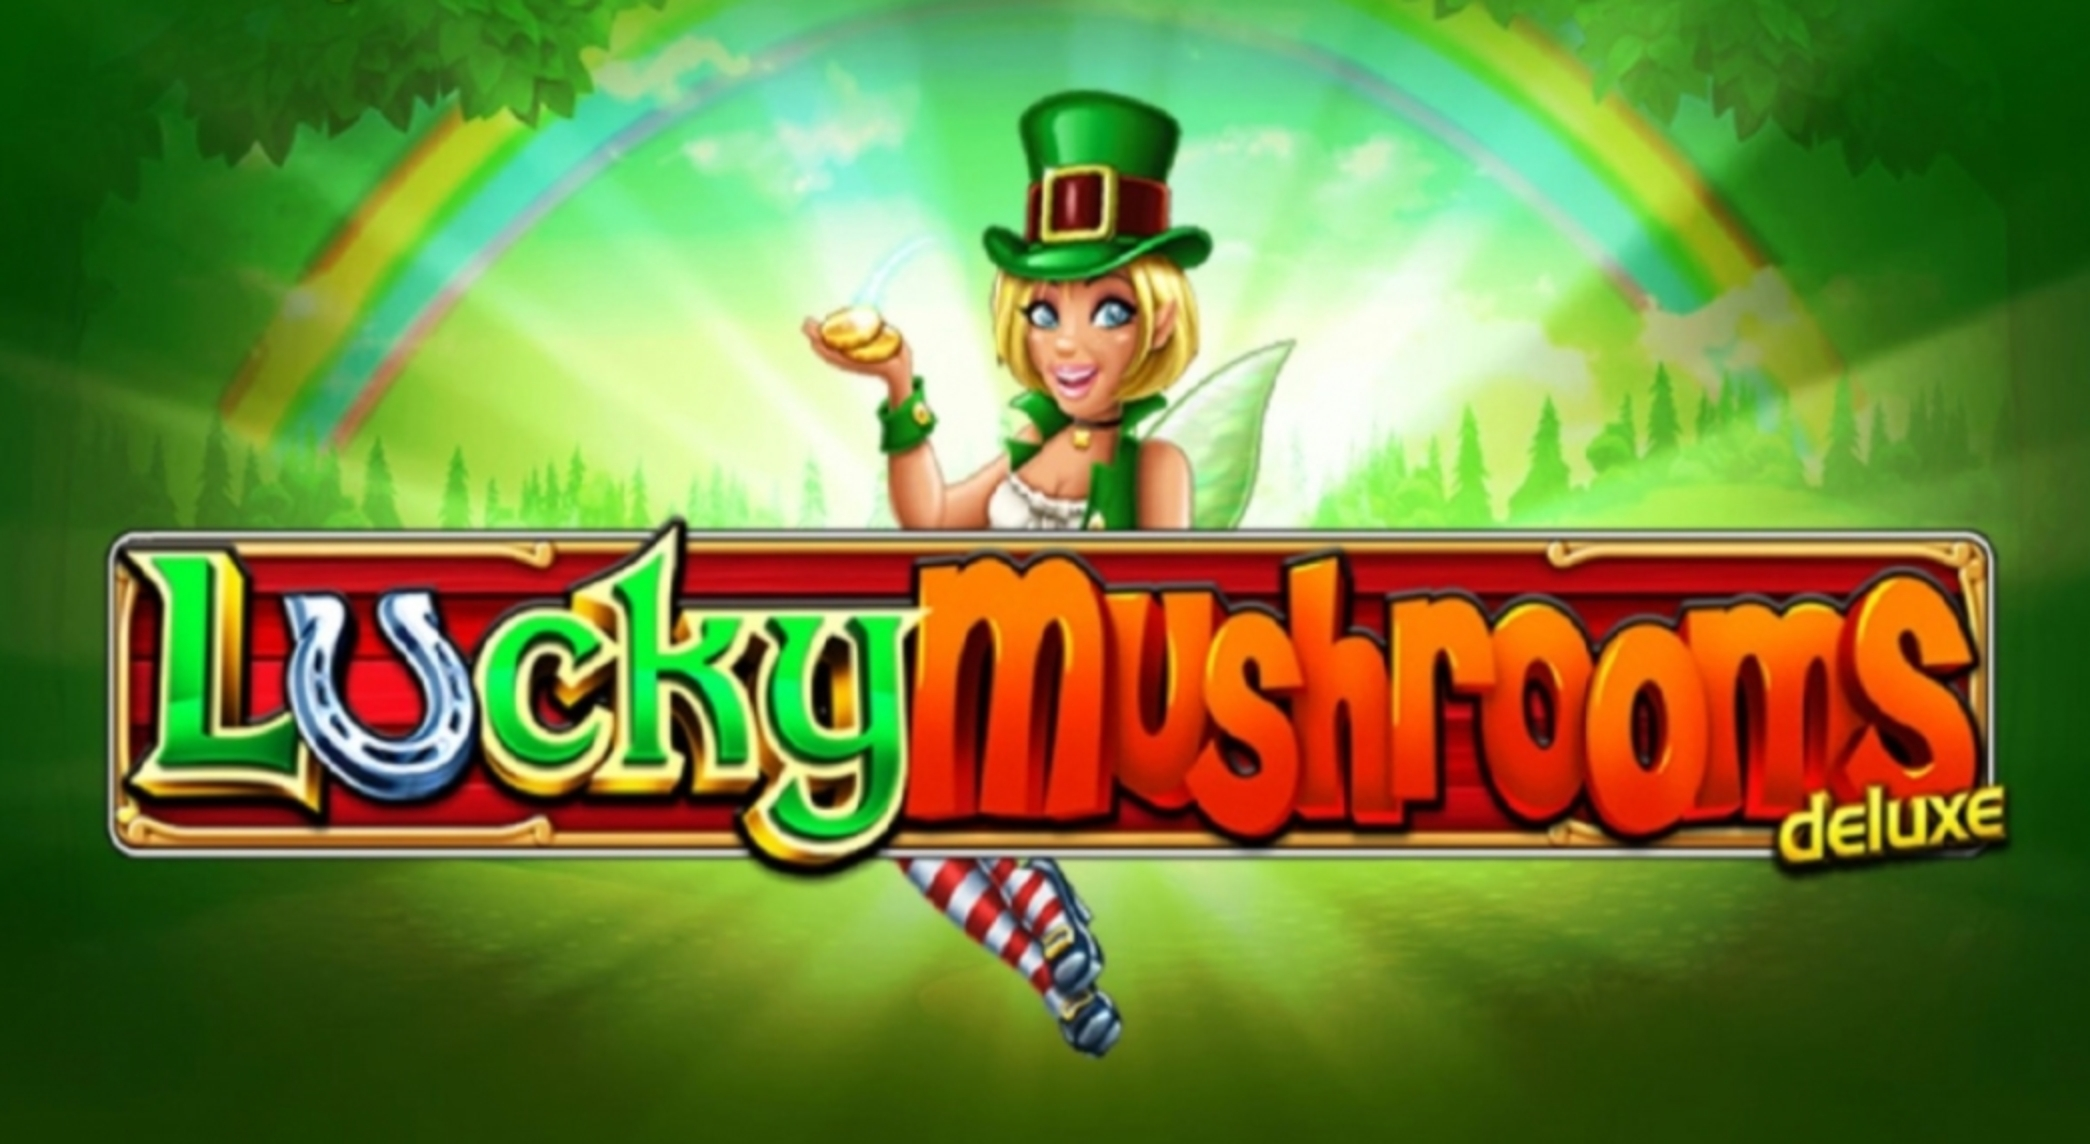 The Lucky Mushrooms Deluxe Online Slot Demo Game by StakeLogic